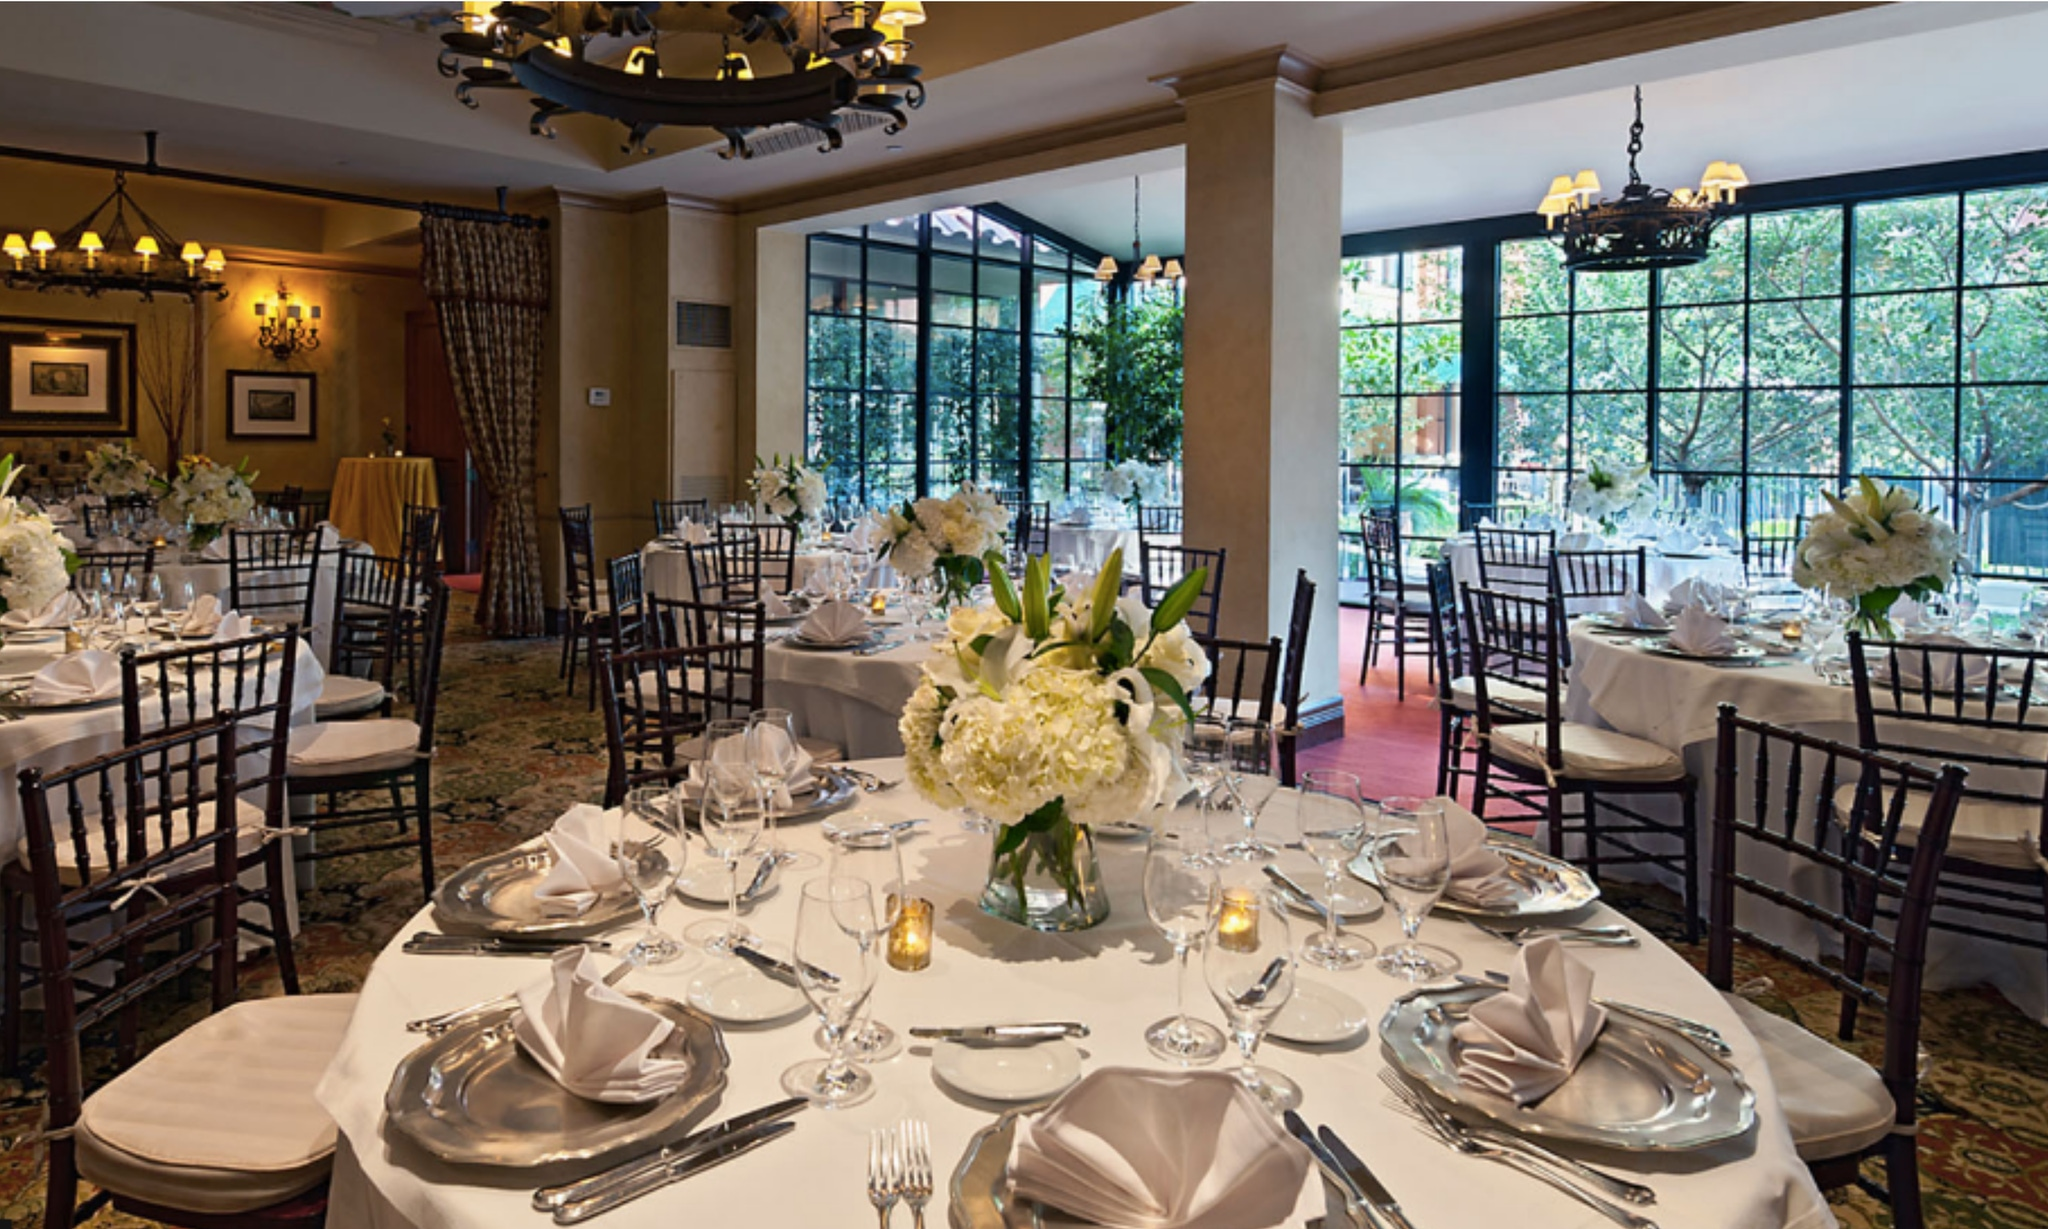 Party table setting with white florals and silver silverware